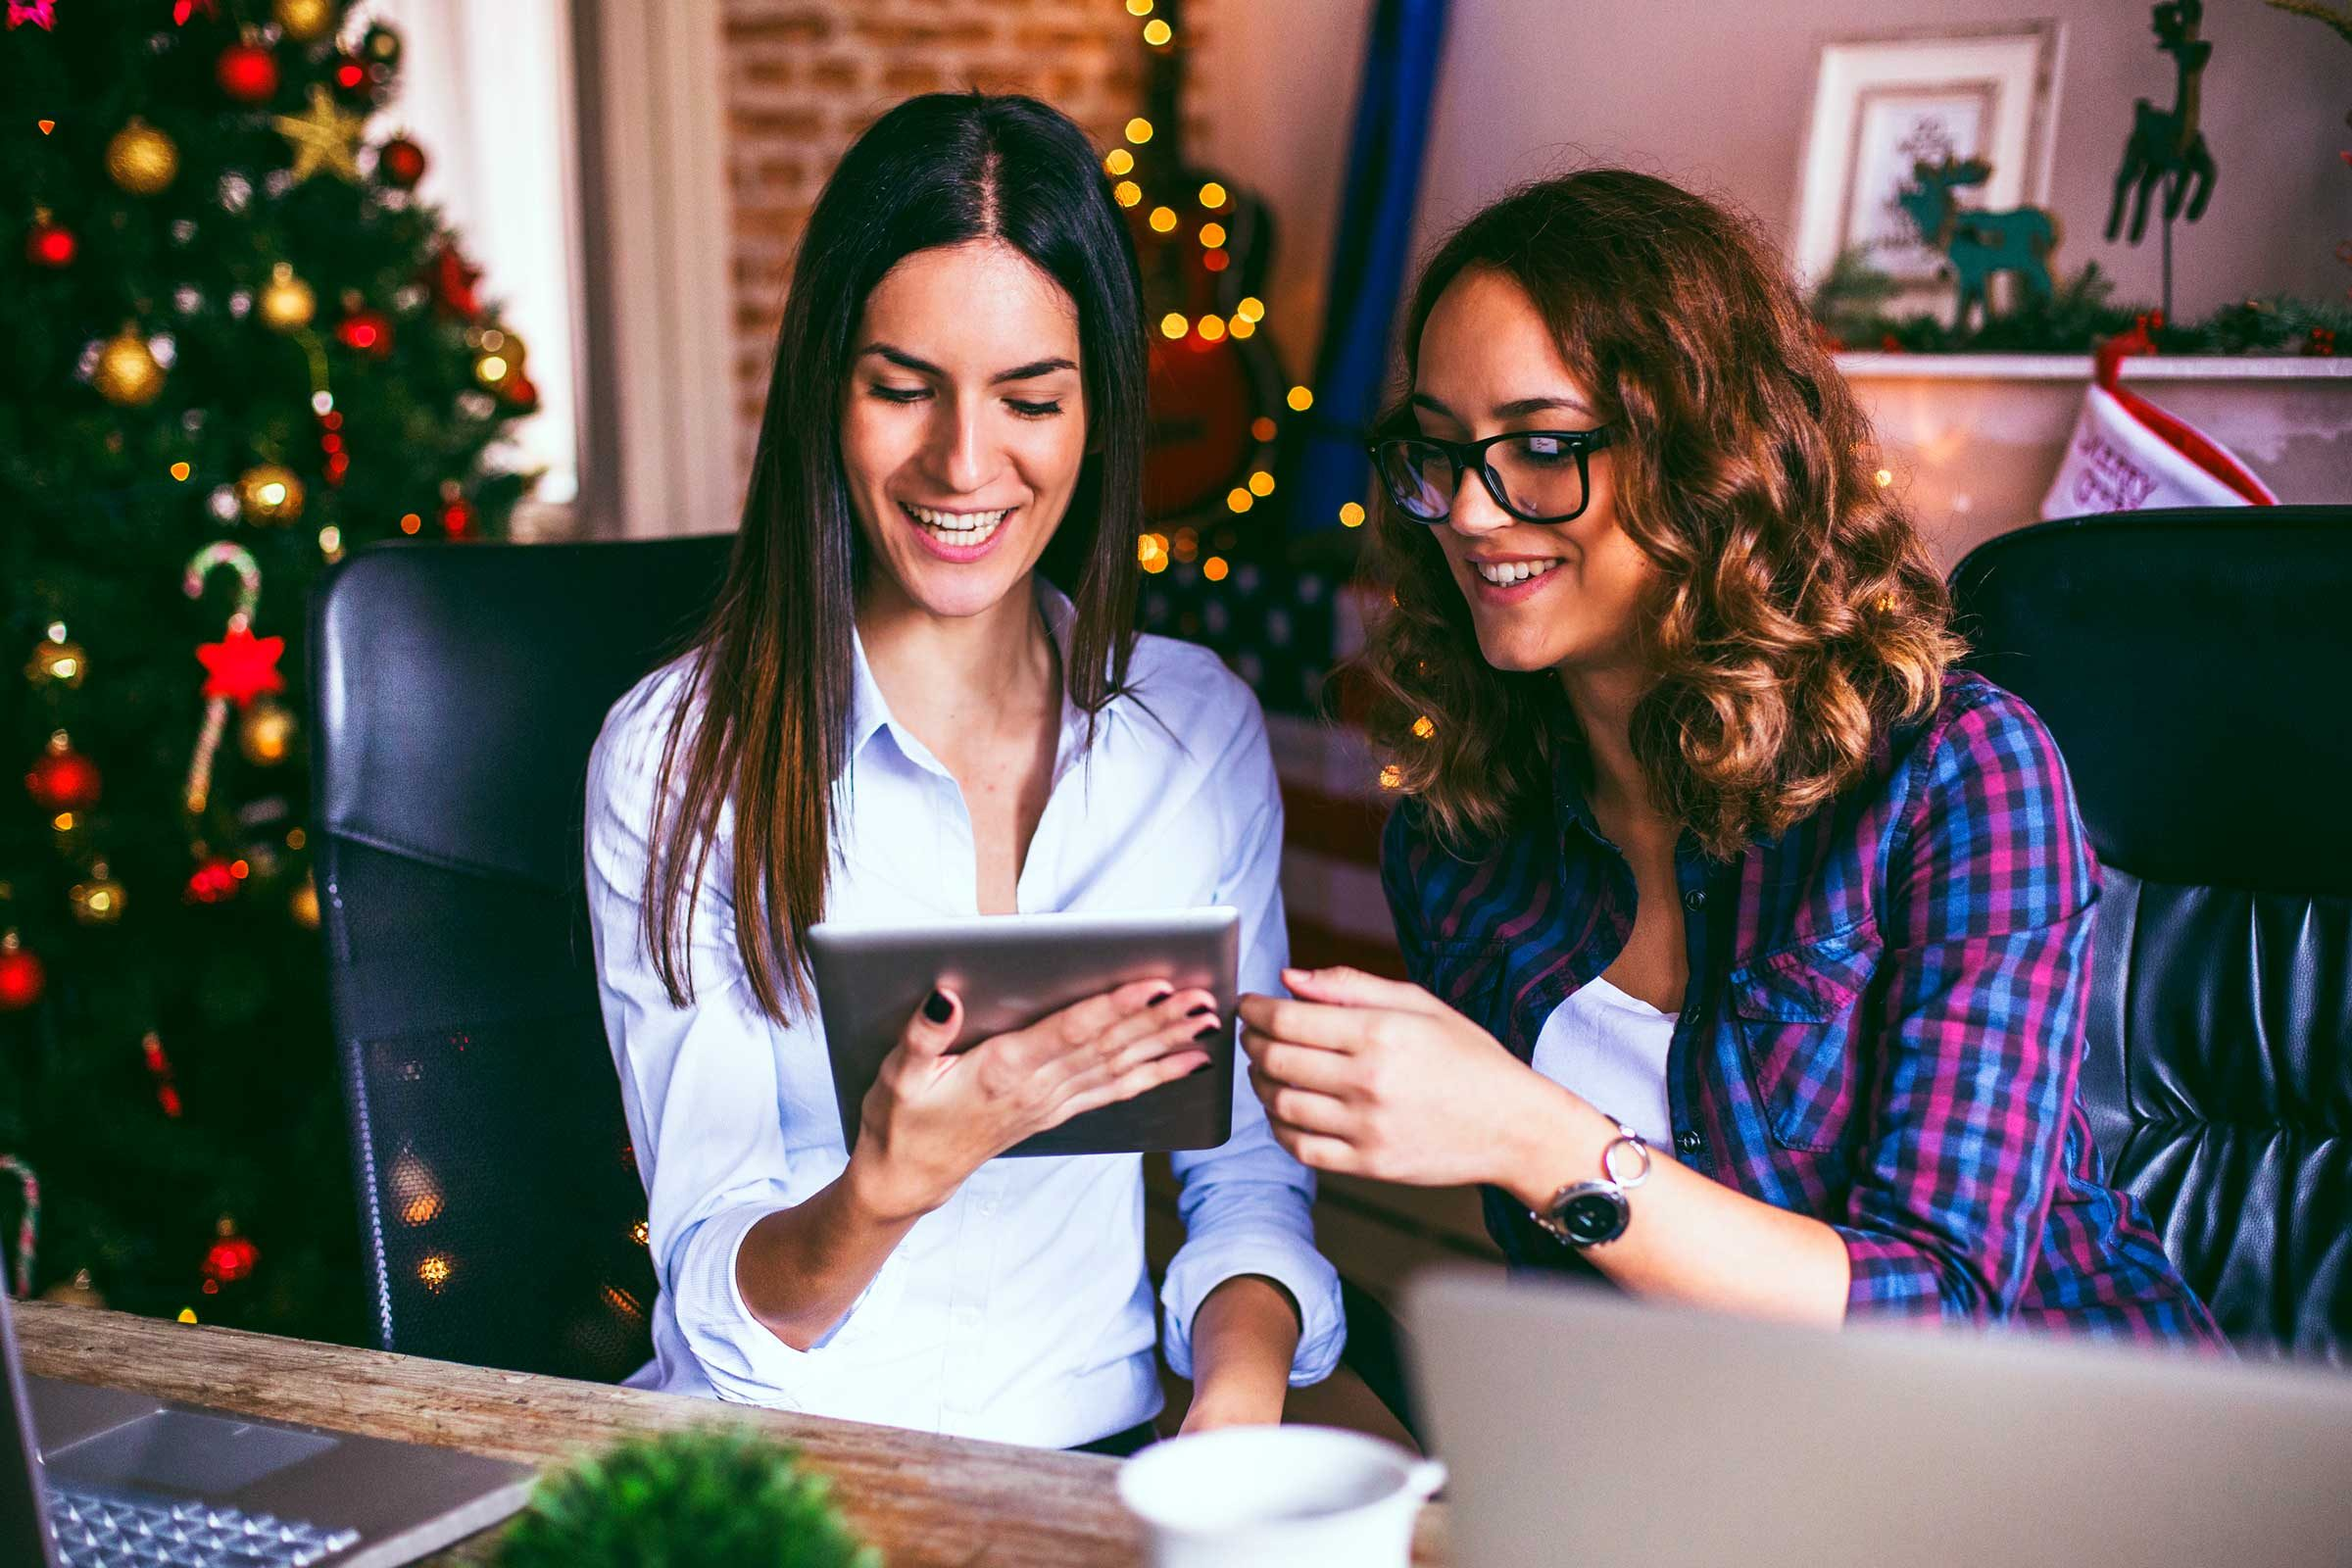 ba6c2414561b4 Holiday Office Party Etiquette Tips | Reader's Digest